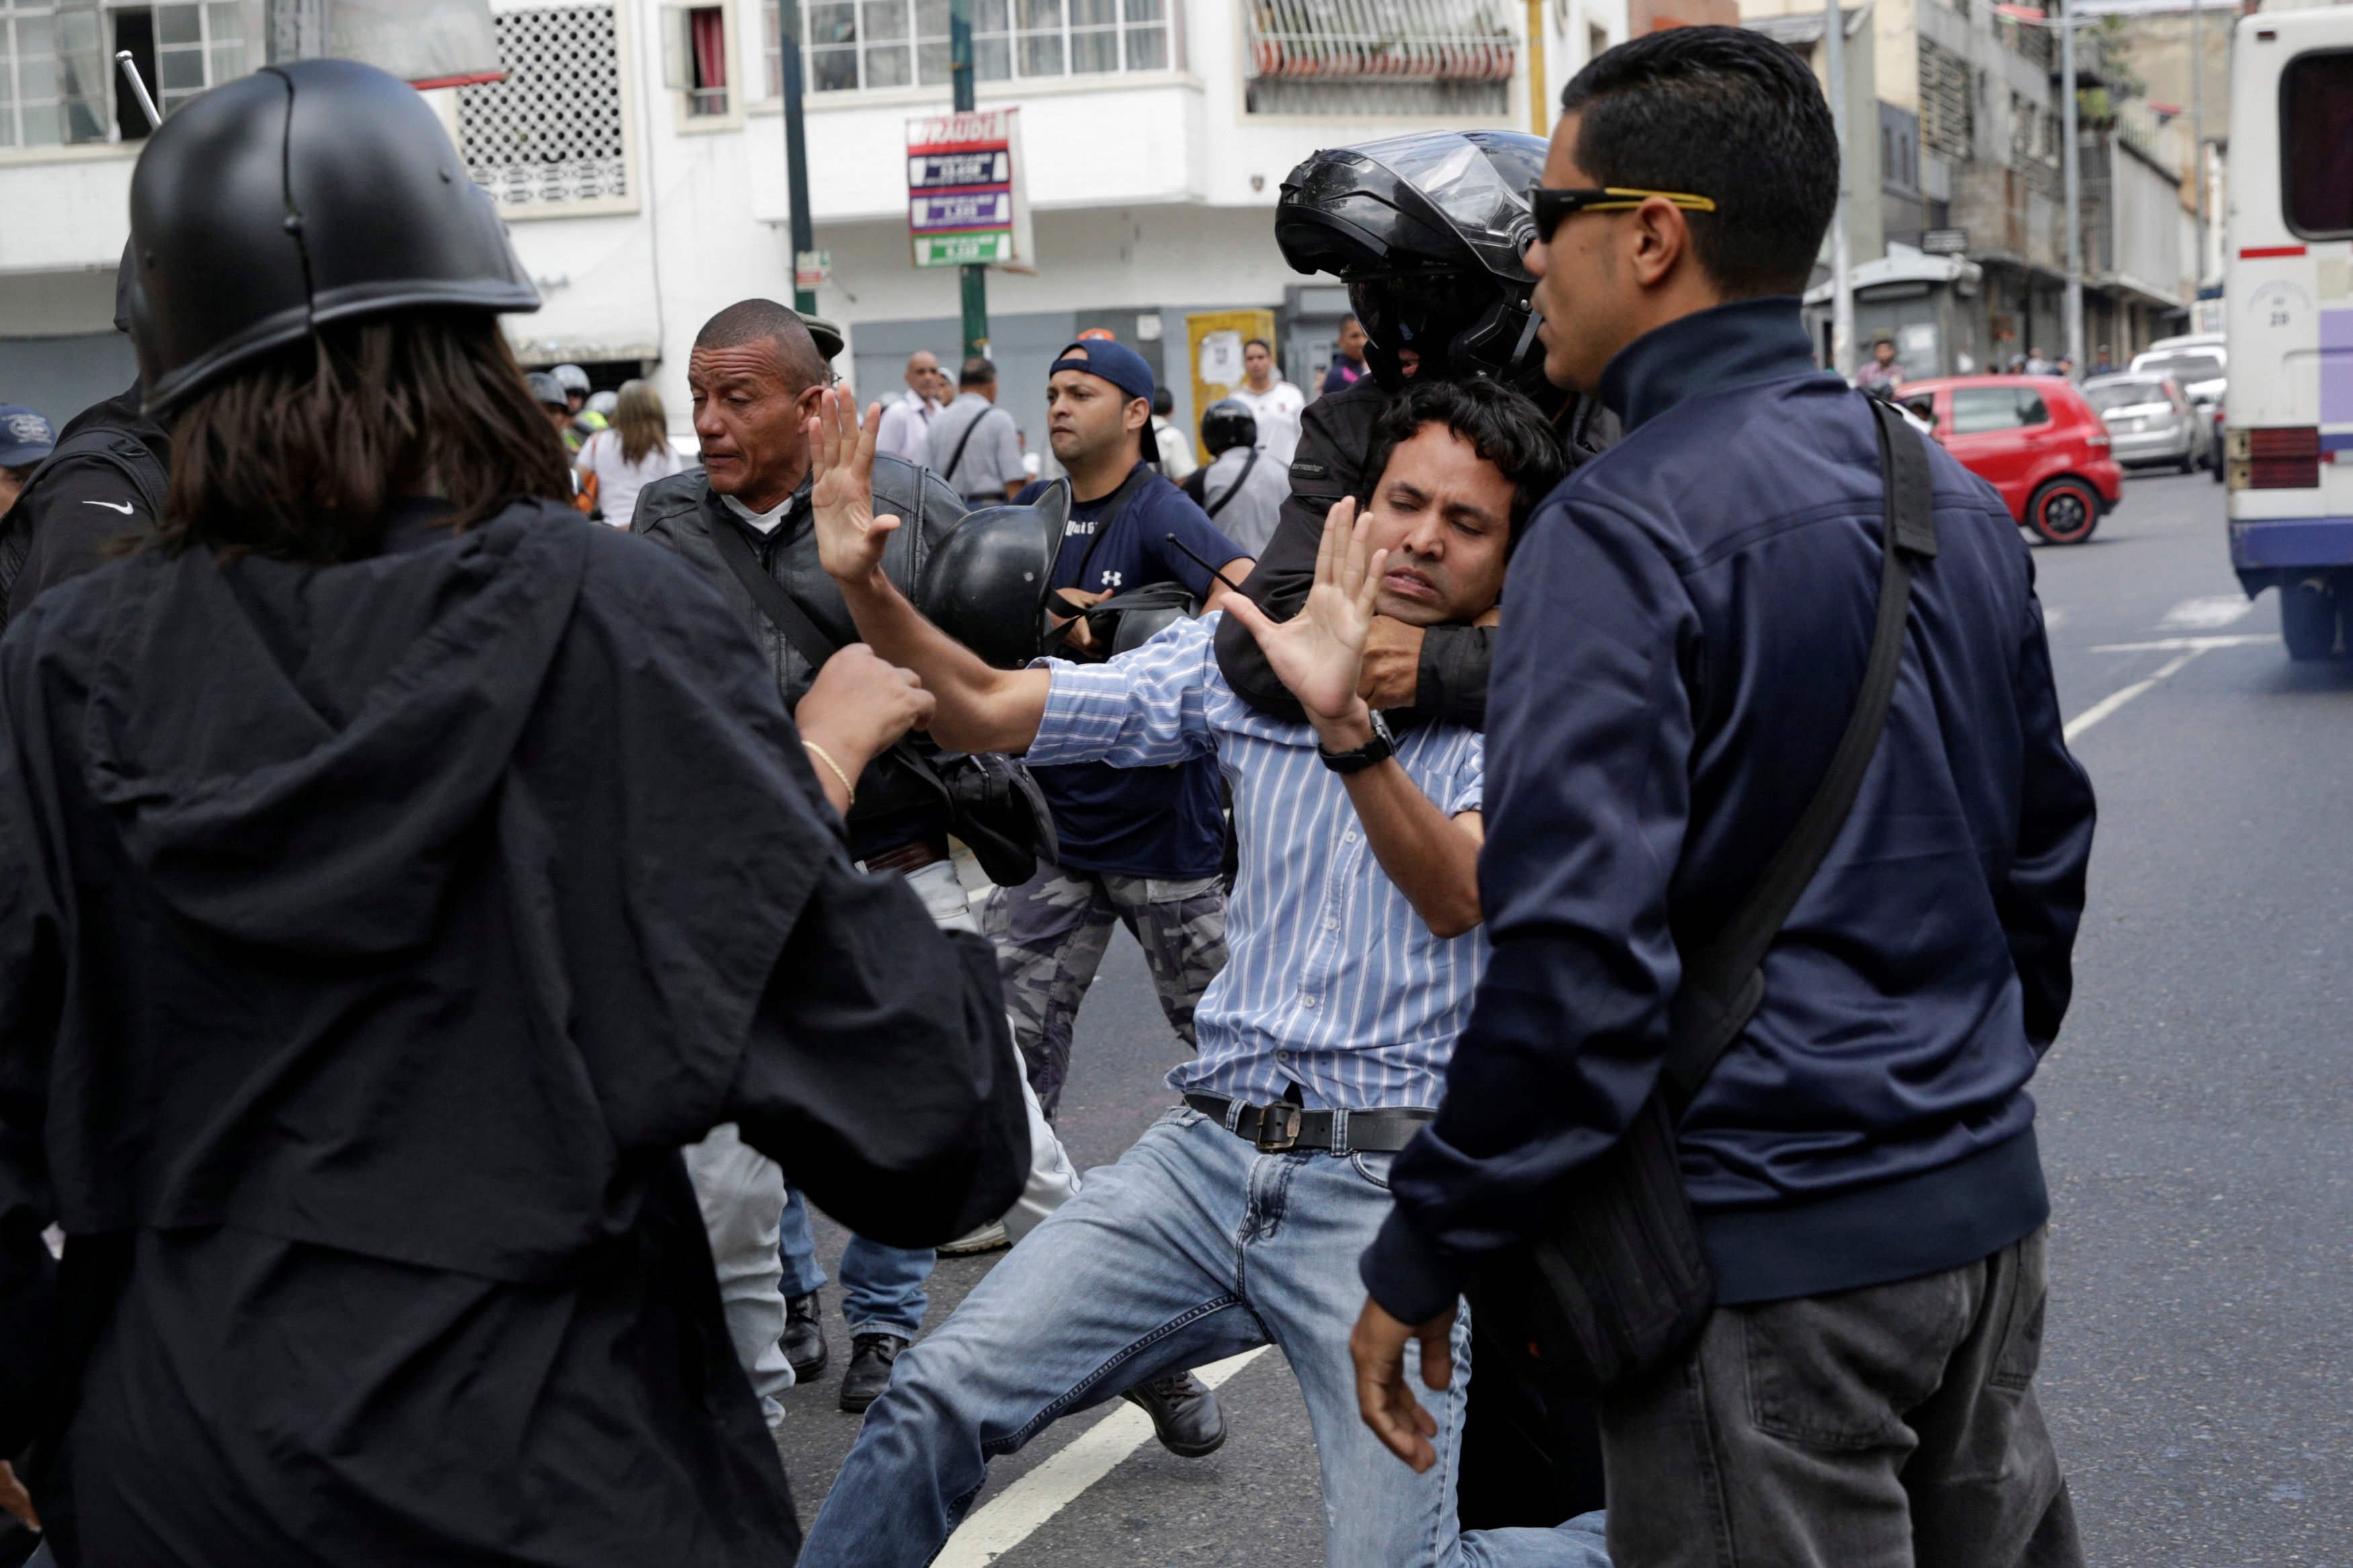 A pro-government supporter wearing a helmet grabs an opposition supporter during a protest against Venezuelan President Nicolas Maduro's government  outside the Venezuelan Prosecutor's office in Caracas, Venezuela  on March 31, 2017. (REUTERS/Marco Bello)